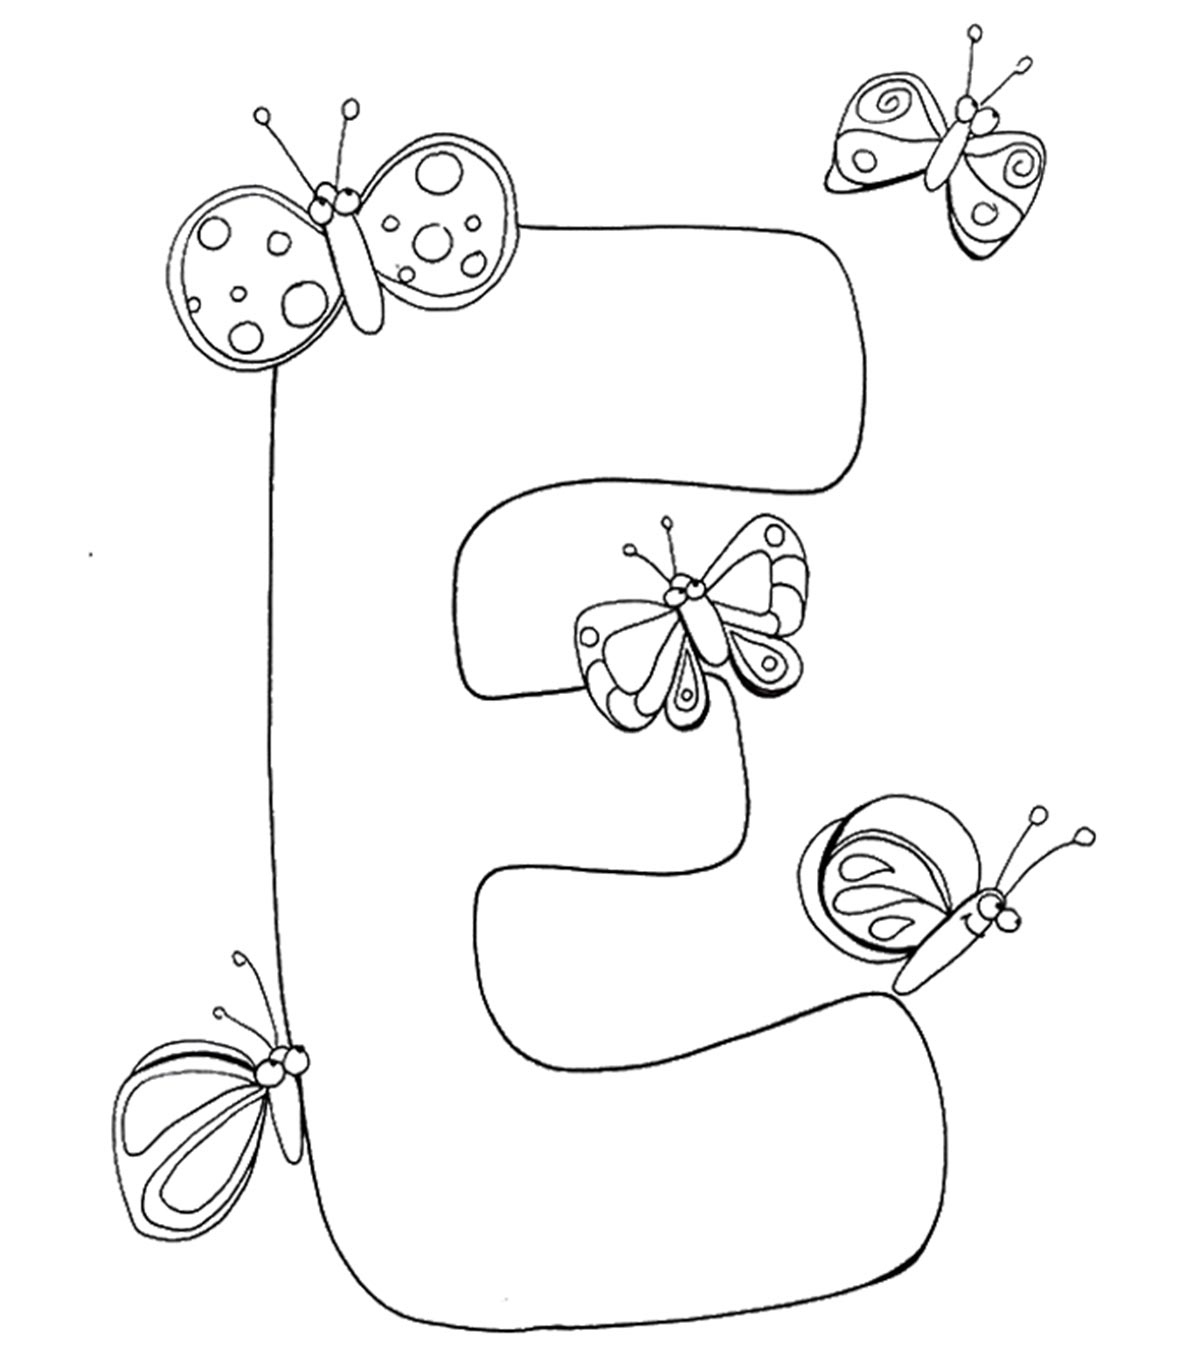 My A to Z Coloring Book Letter F coloring page | Alphabet coloring ... | 1350x1200